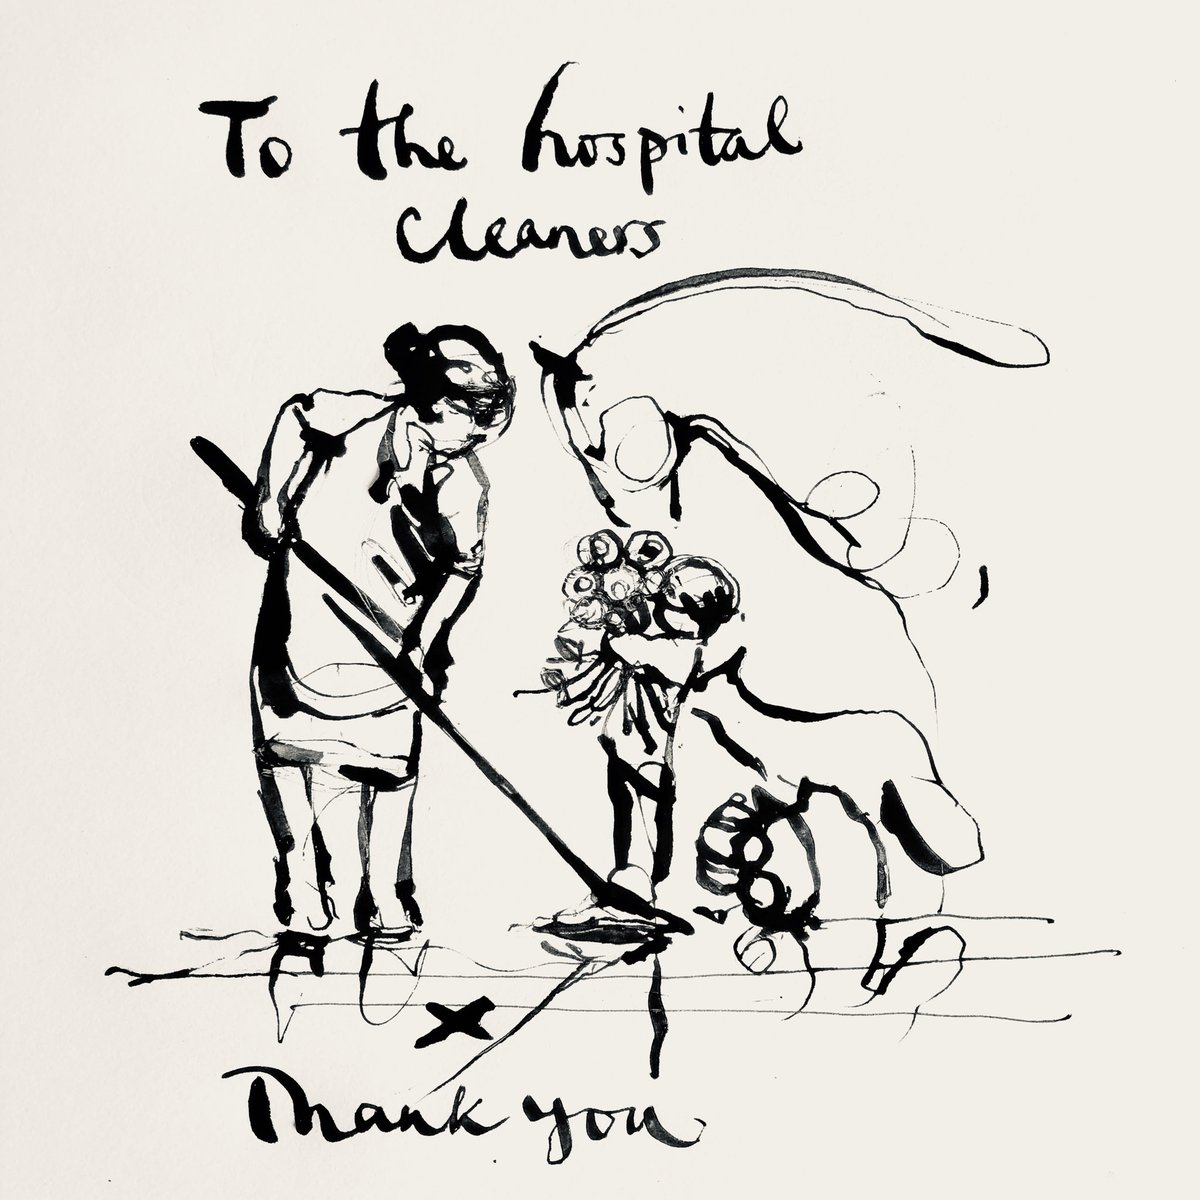 The hospital cleaners. Legends. Thank you